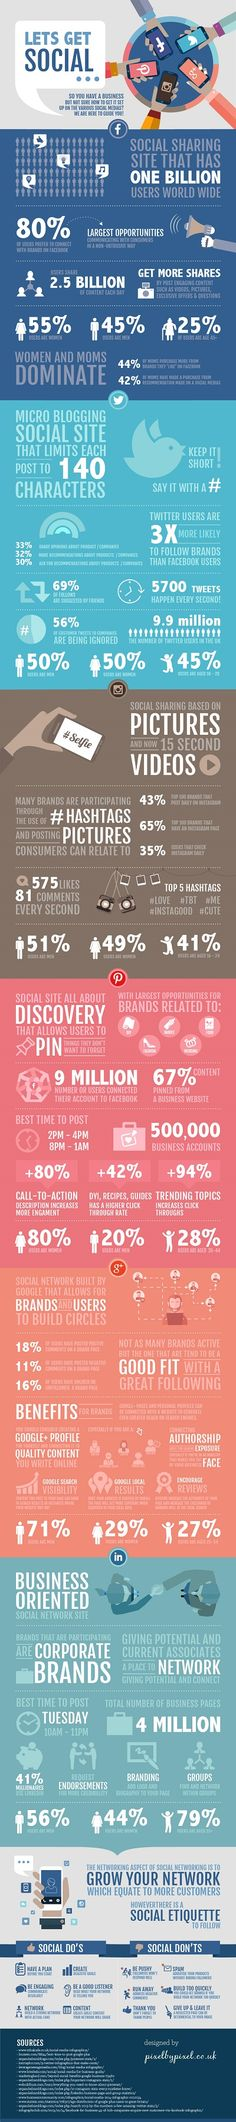 Let's Get Social! #infographic